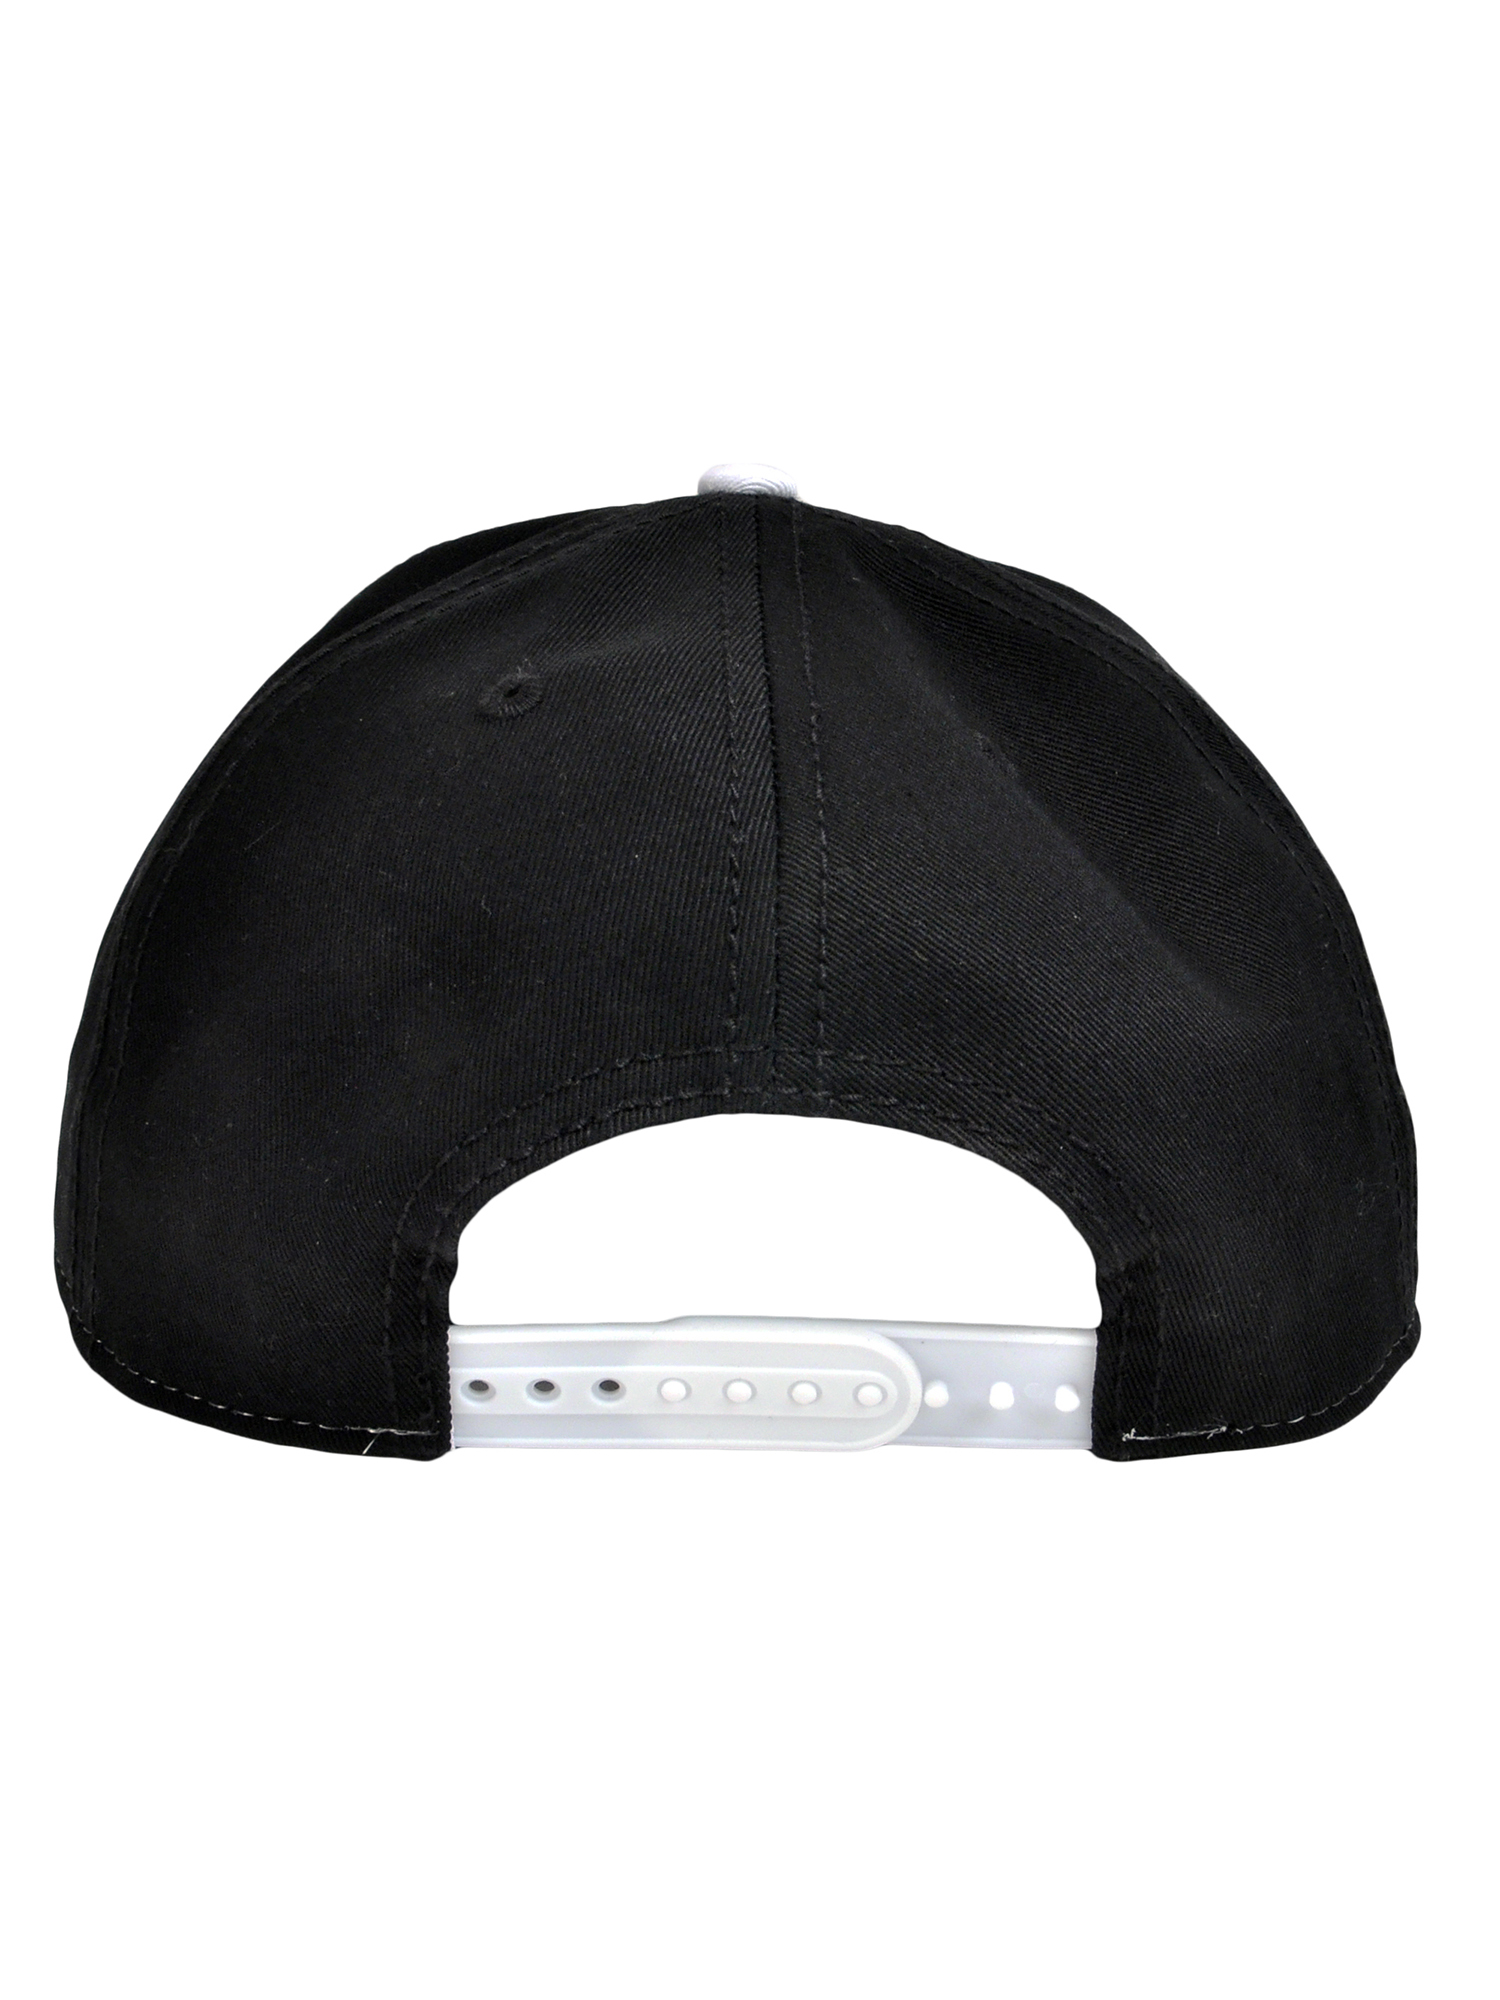 66fd51acdaecd Youth Boys Mickey Mouse Smash Baseball Hat Cap - Black Snapback. Product  Details